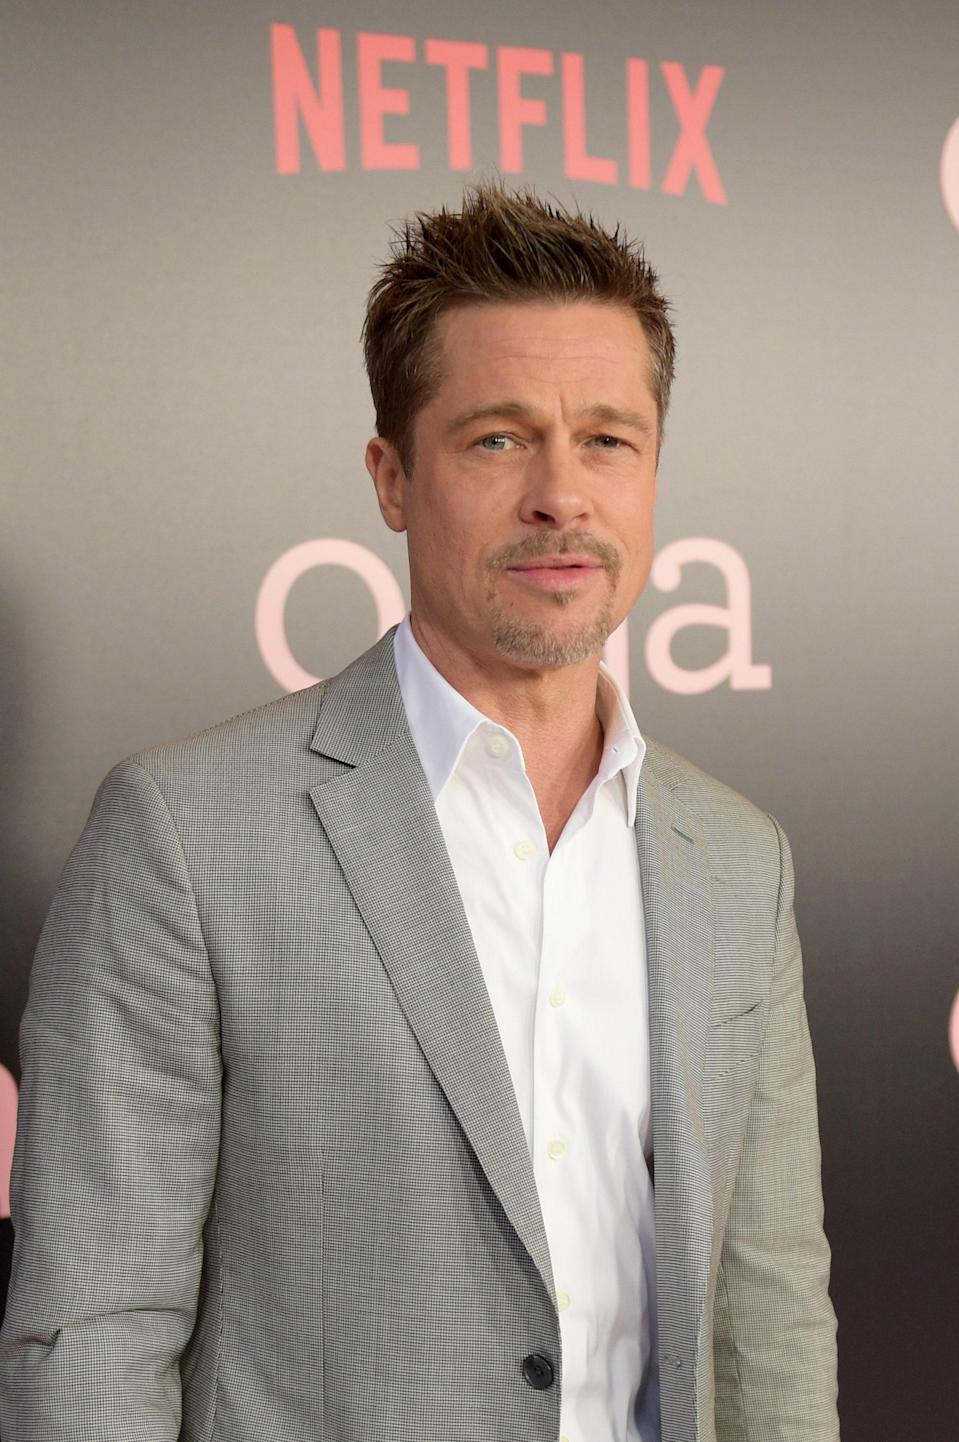 """Brad Pitt decided to use a name <em>close</em> to his birth name when he started his career. Instead of going by his full birth name, William Bradley Pitt, he shortened it to Brad Pitt. (It does sound a bit better than Will Pitt, if you ask me.) <a href=""""https://pagesix.com/2018/01/02/brad-pitt-uses-his-real-name-when-flirting/"""" rel=""""nofollow noopener"""" target=""""_blank"""" data-ylk=""""slk:According to Page Six"""" class=""""link rapid-noclick-resp"""">According to Page Six</a>, in his personal life he likes to go by William. While on a coffee run, a woman introduced herself and he reportedly said, """"Hi, I'm William."""" She replied, """"Oh, you look like a Bradley."""" And he responded, """"Well, that's my middle name,"""" and smiled and winked. Swoon!"""